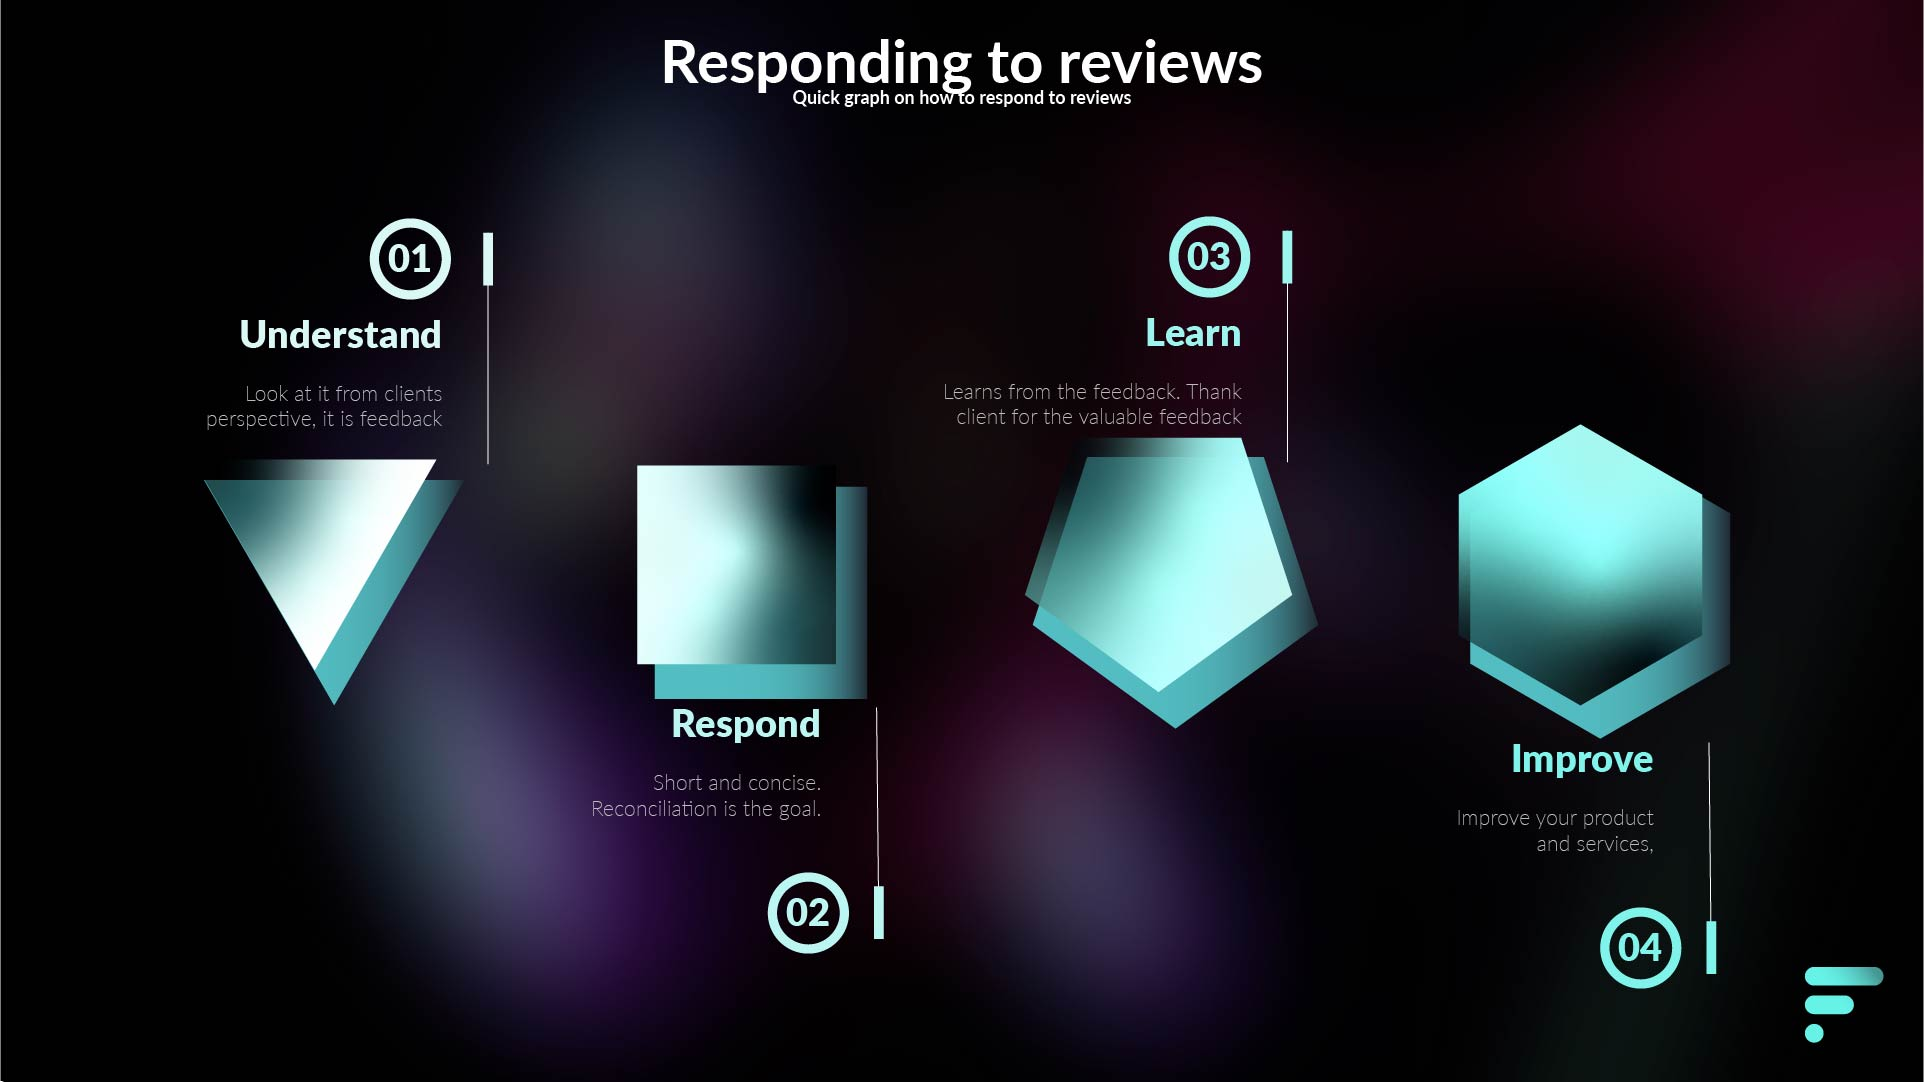 Simple image representing the process to responding to reviews.